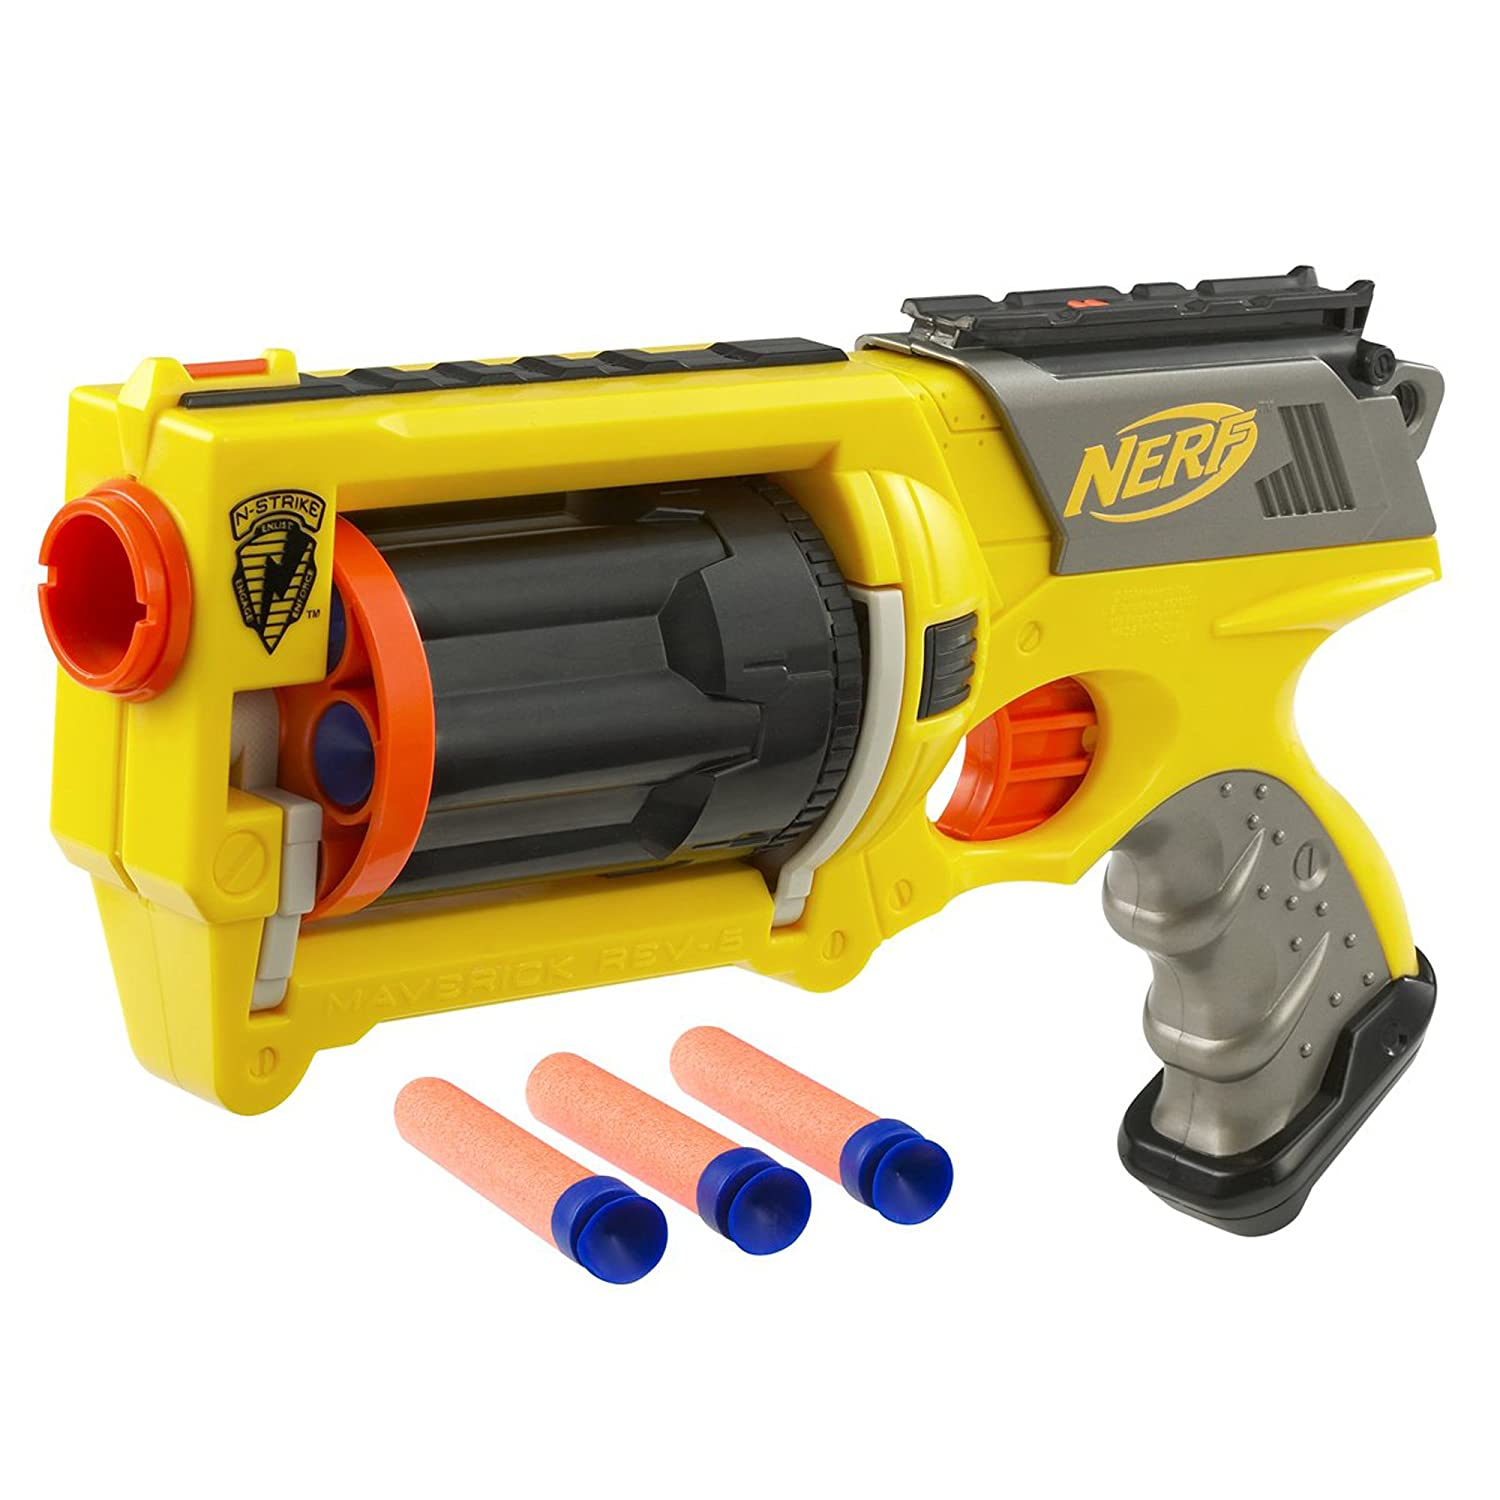 Every office needs at least 4 NERF guns. This one will undoubtedly be my  second